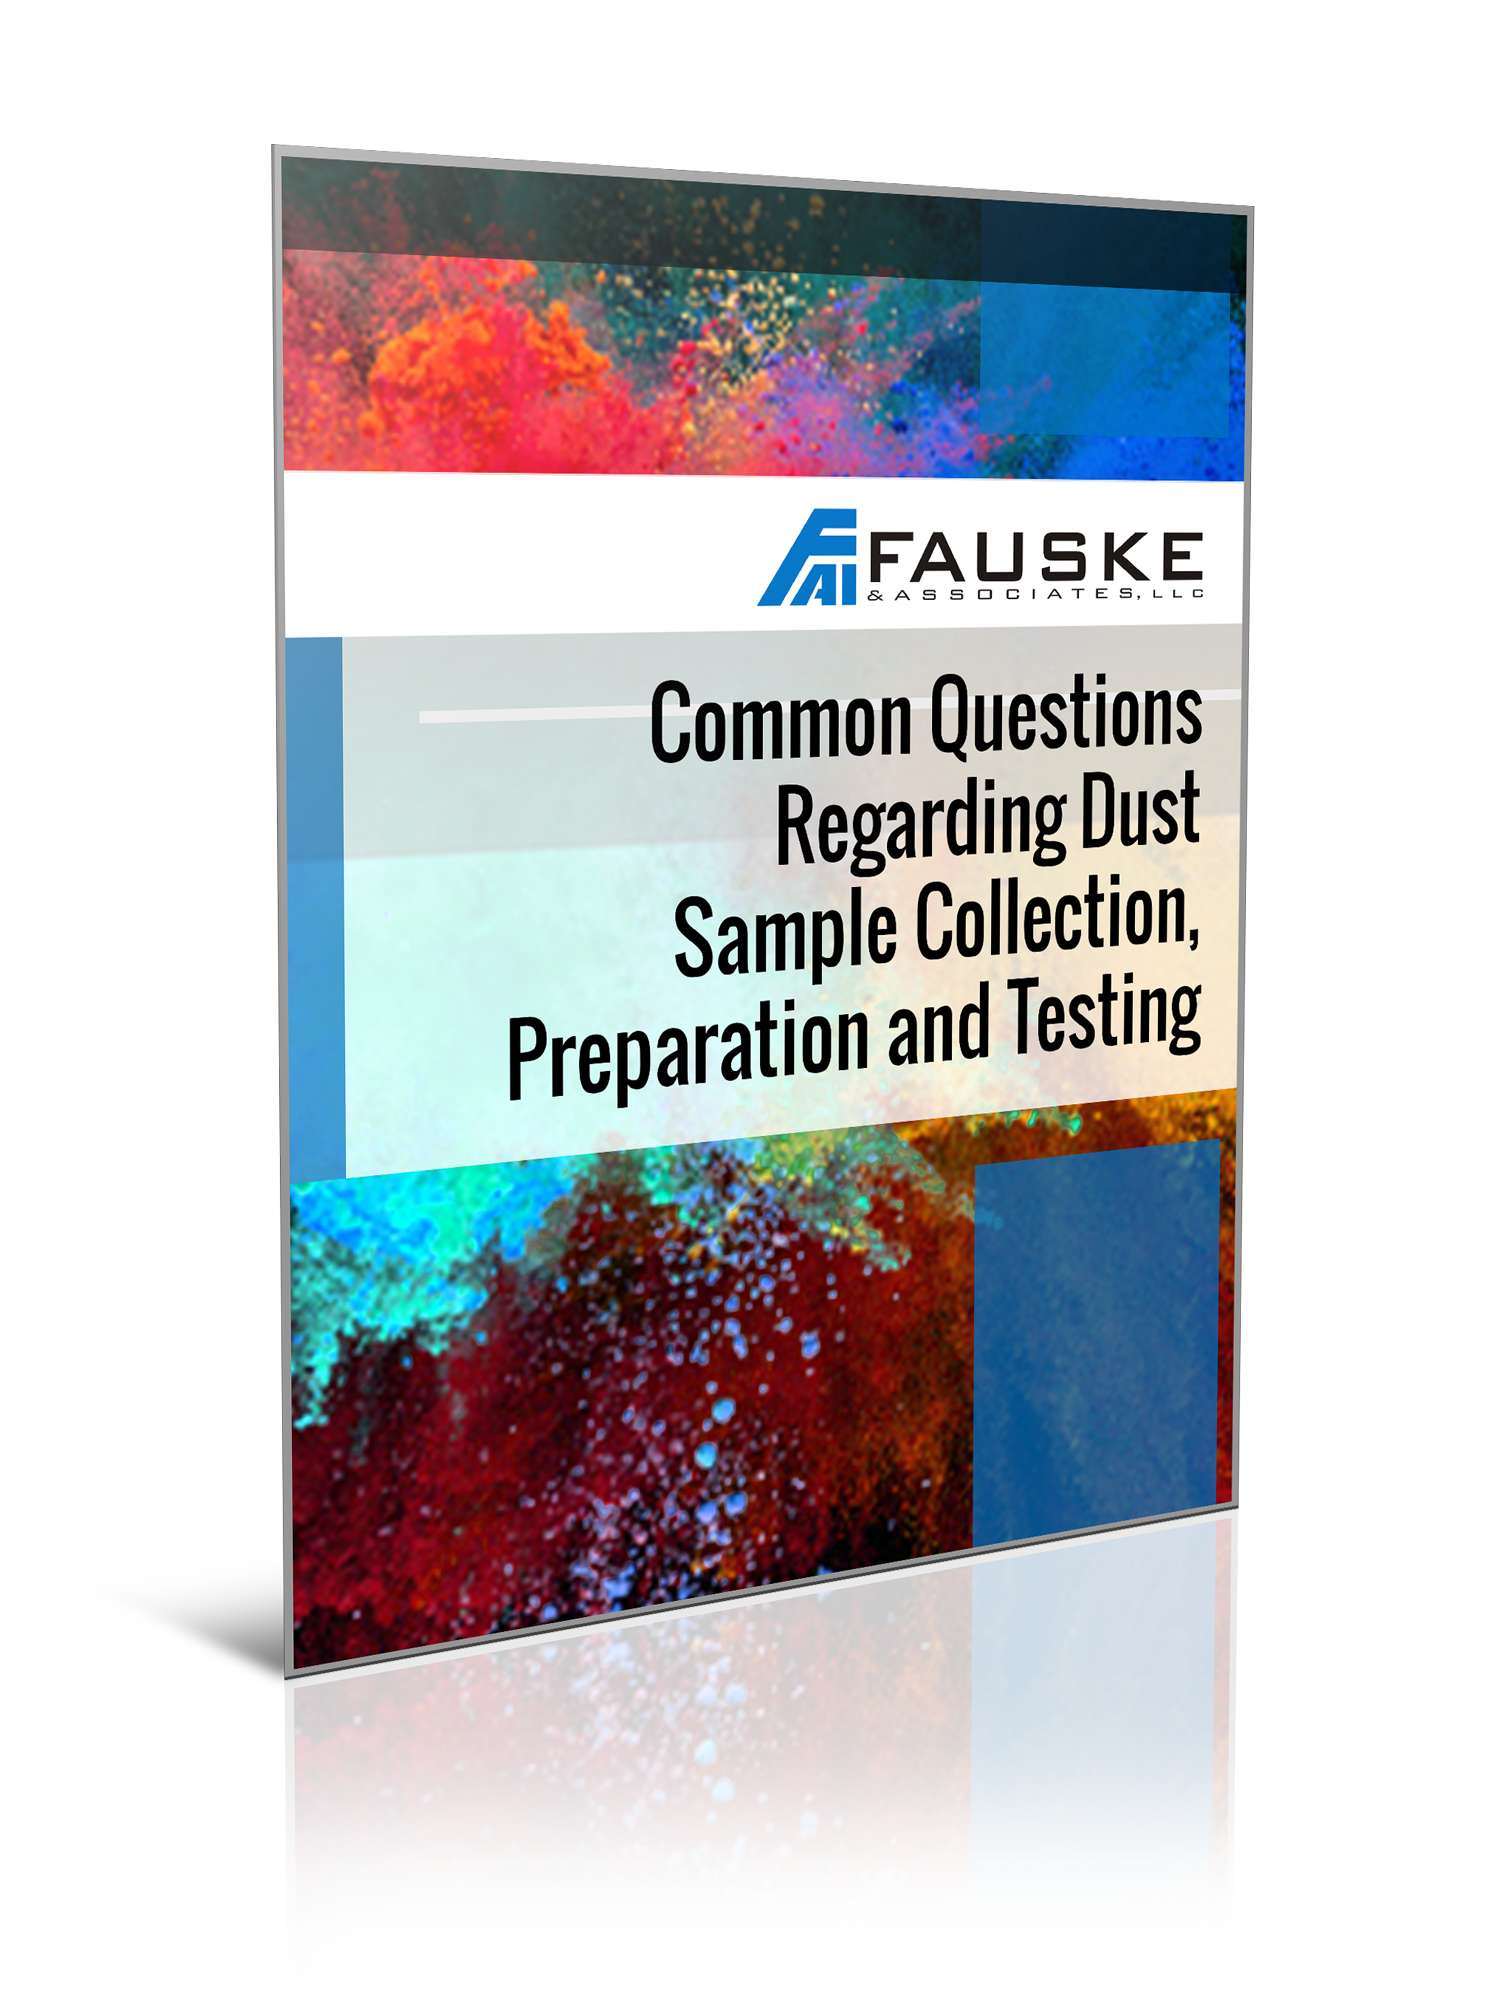 fauske-pg-cover-common-questions-dust.png